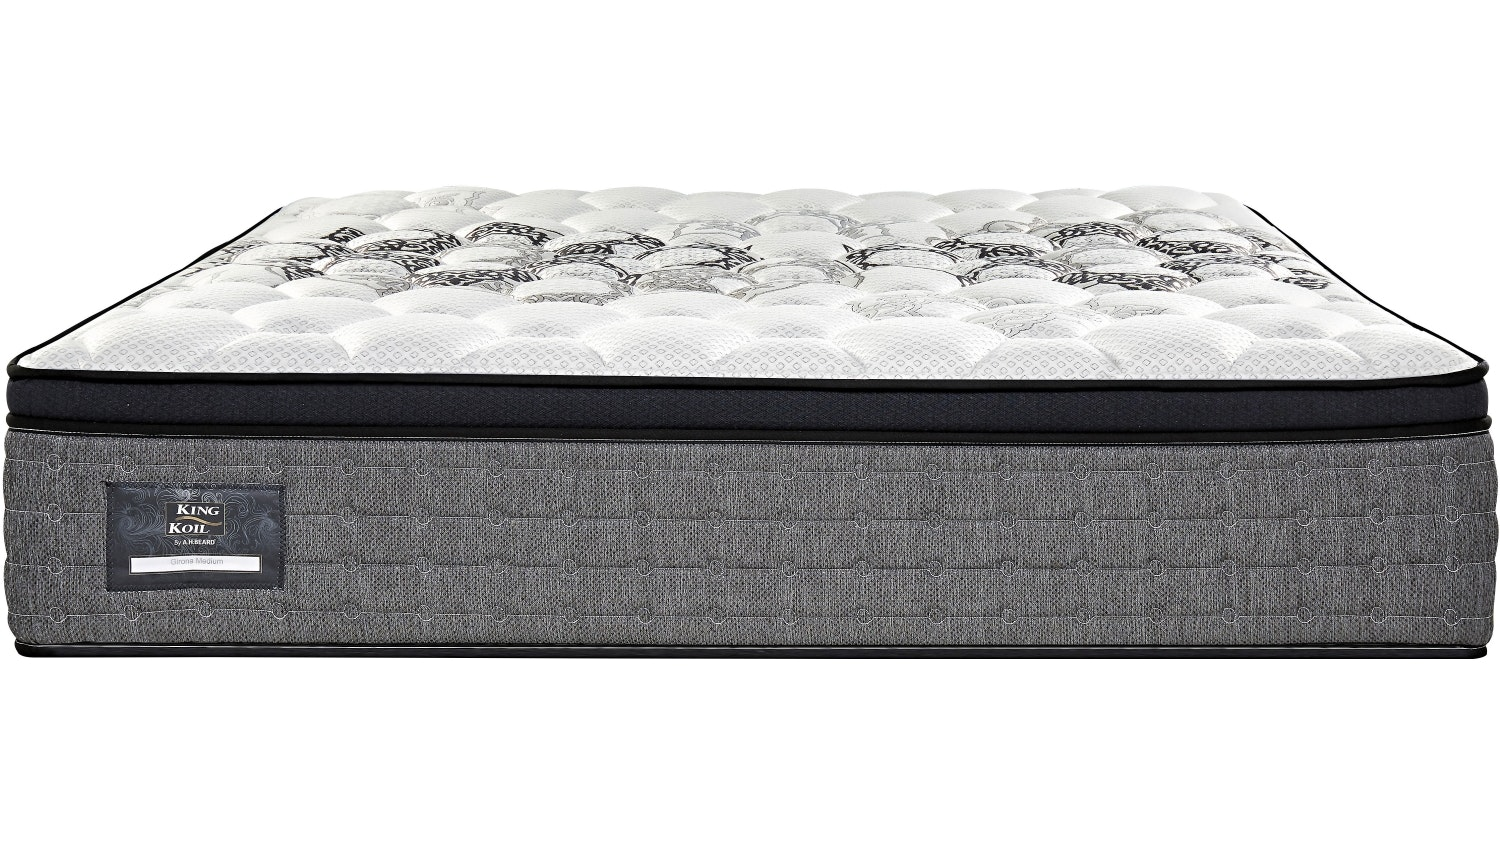 King Koil Girona Medium Mattress